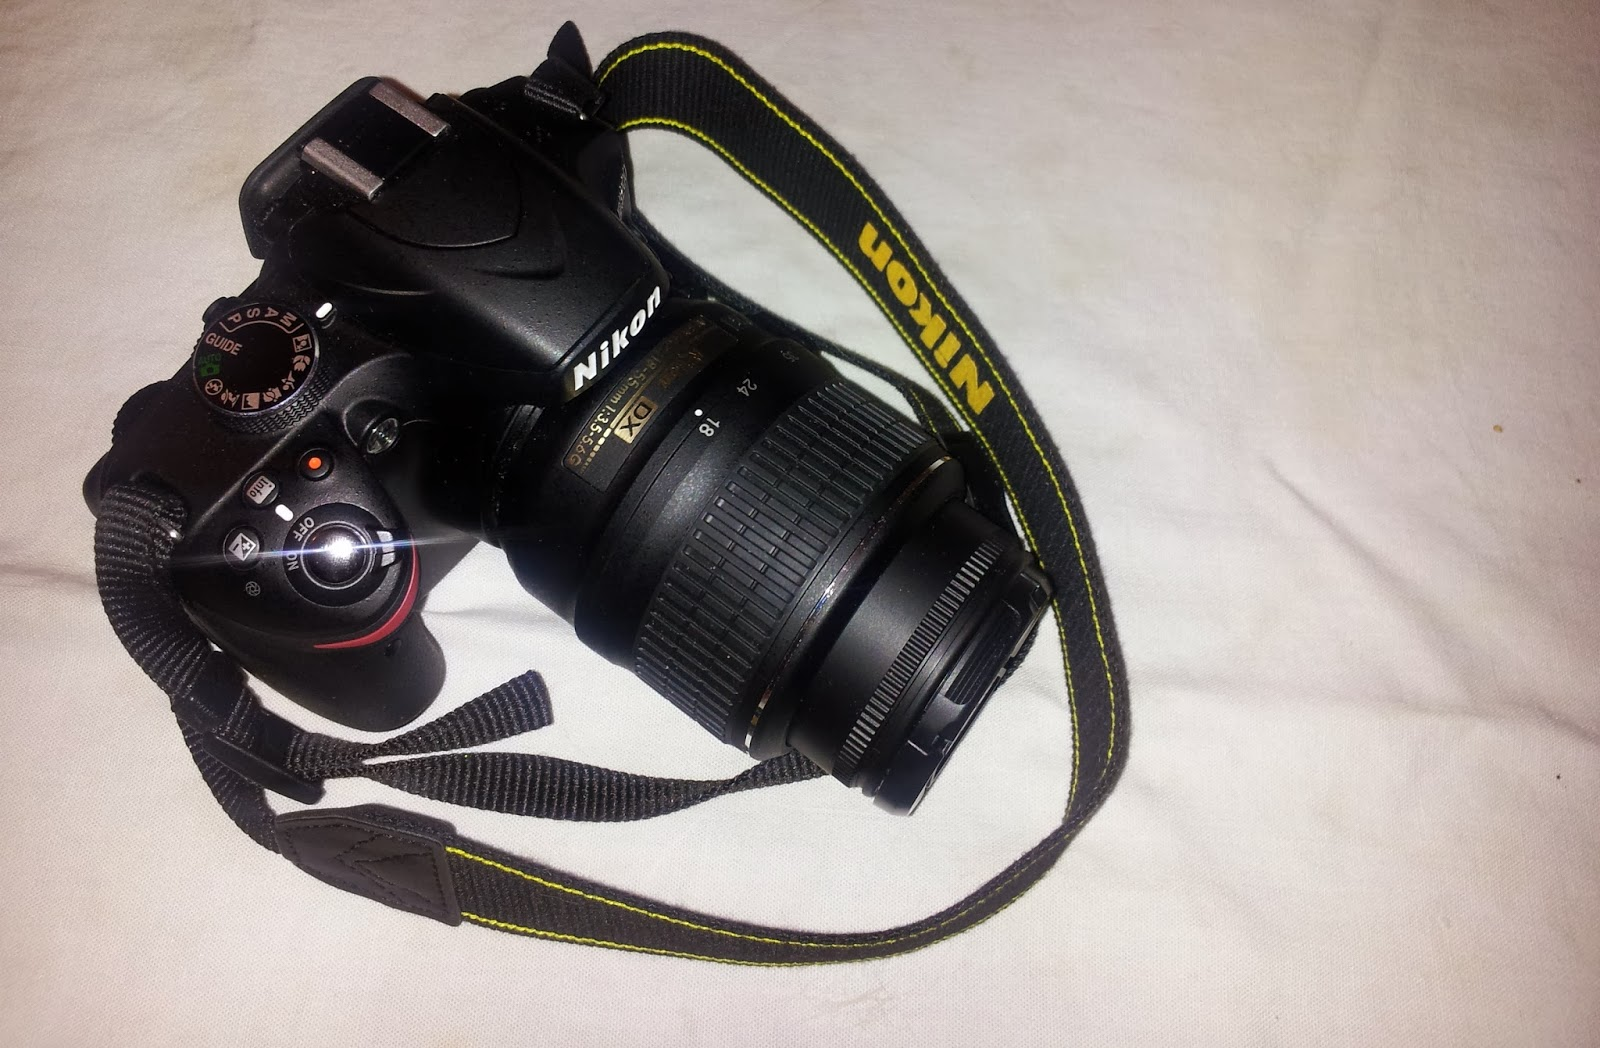 Picture of a Nikon D3200 DSLR camera